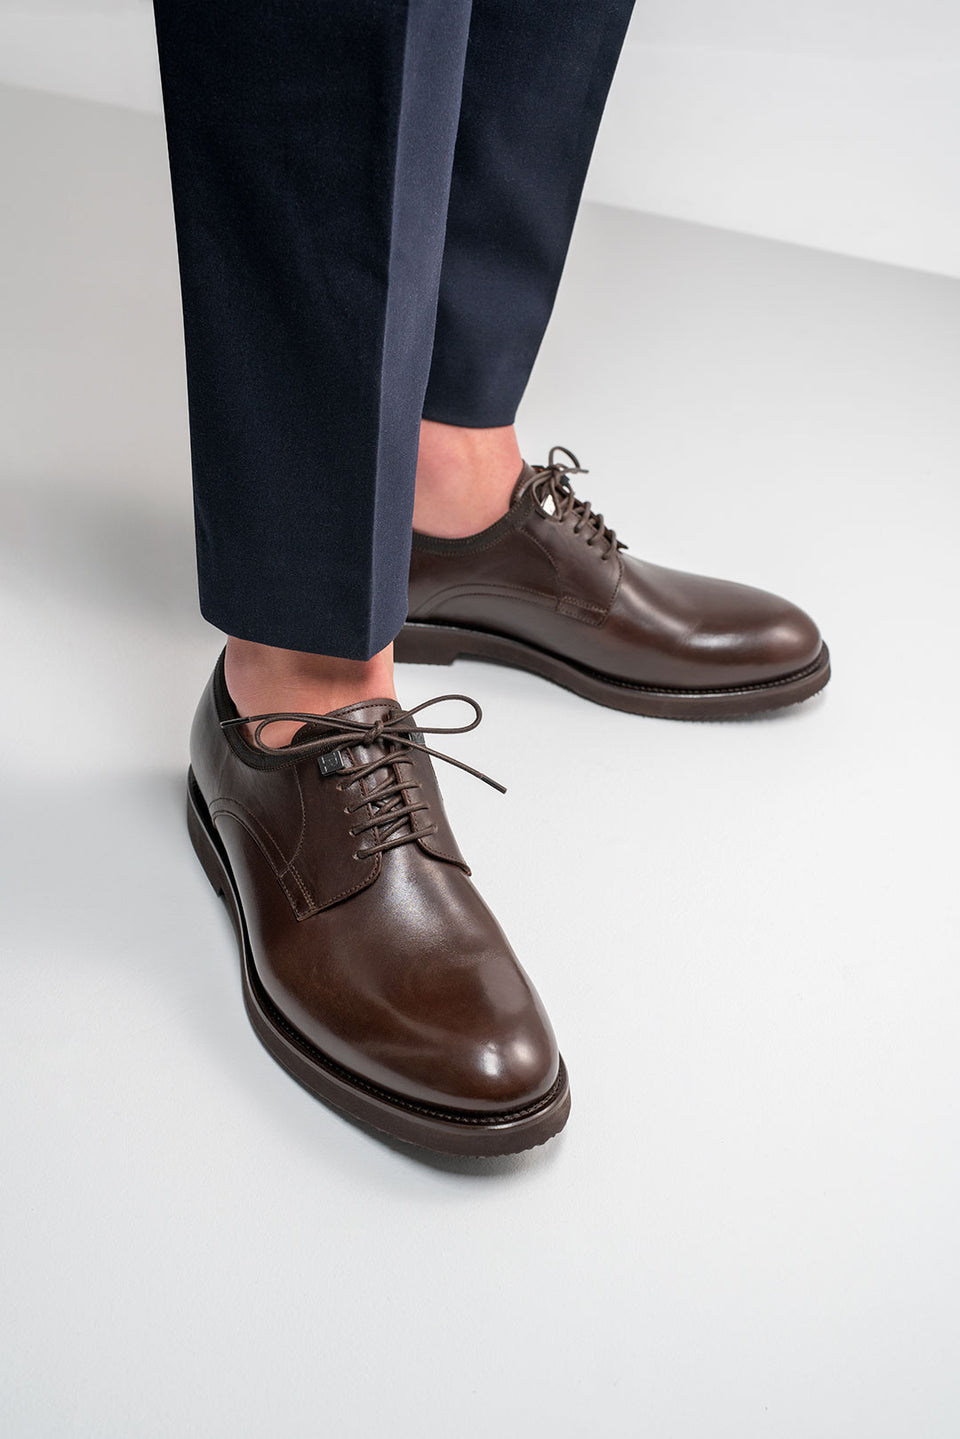 001 - Derby in Brown Calfskin